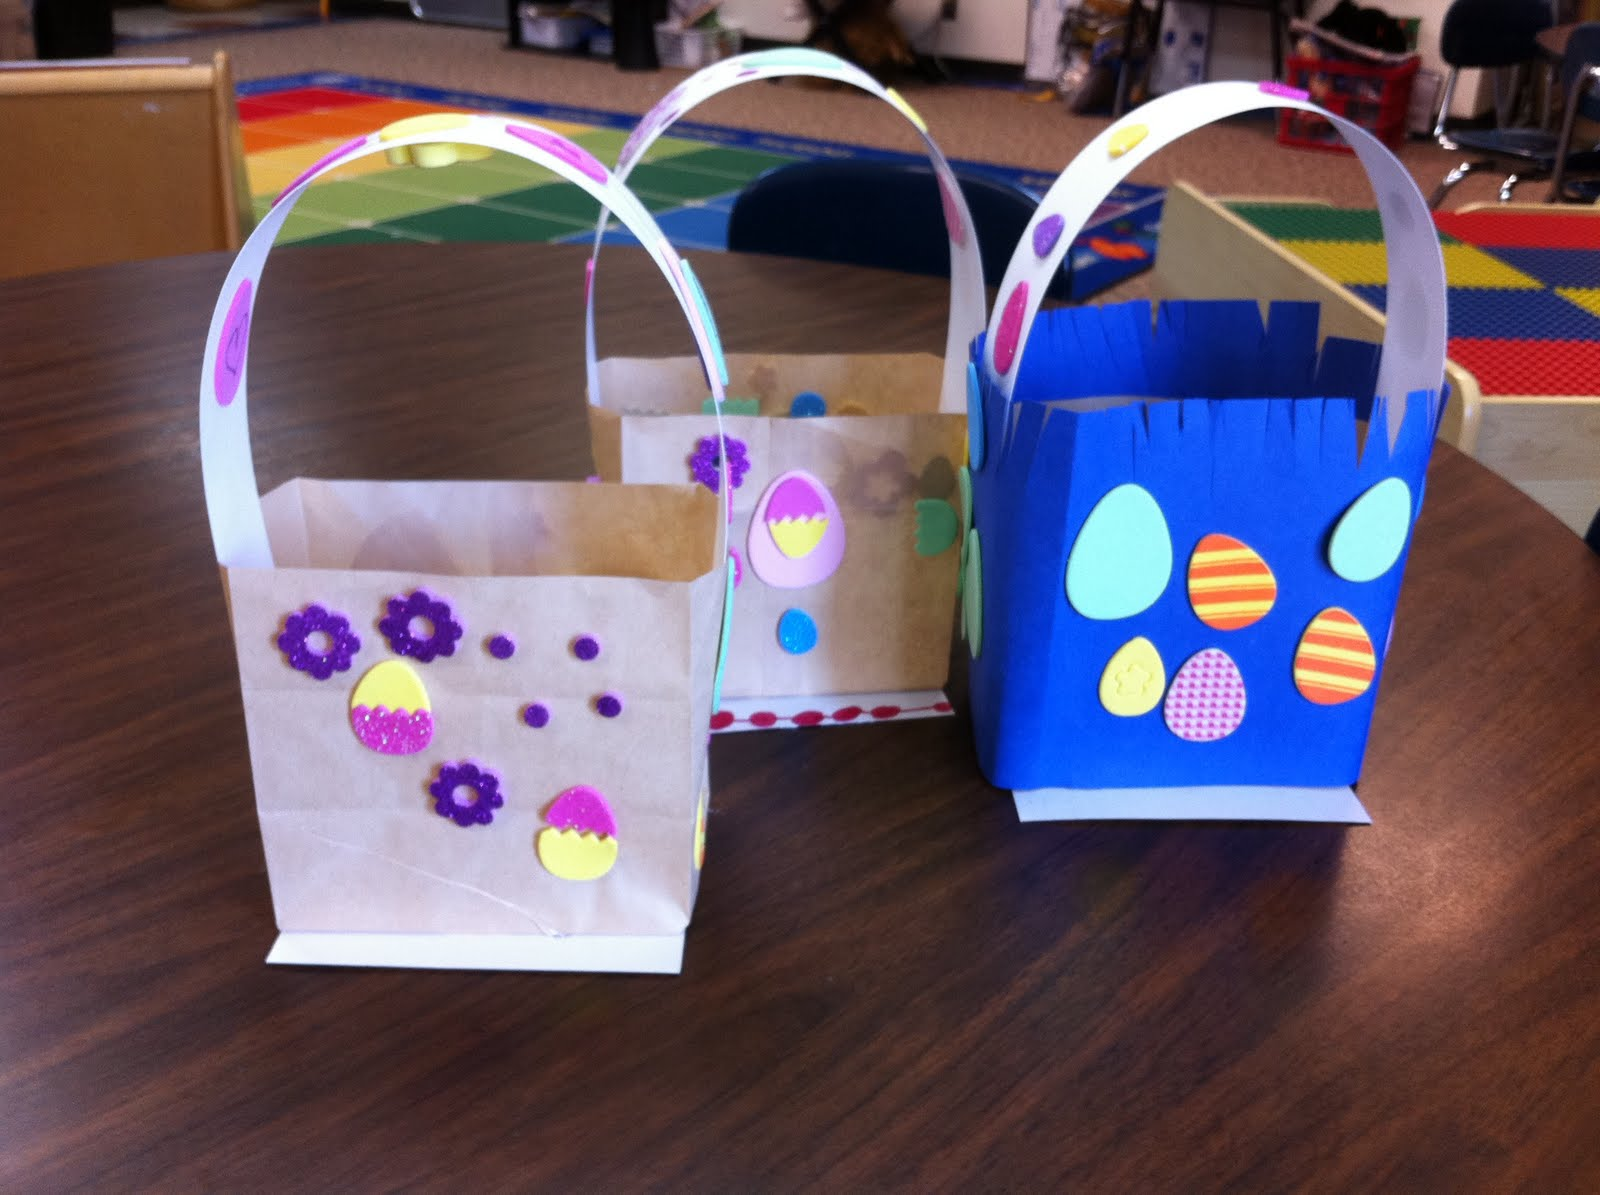 All you do is cut a curved section out of each side of the bag, and then take the two long pieces at the top and tape or glue them together to form the handle. Thus the name QUICK and EASY Paper Bag Easter .